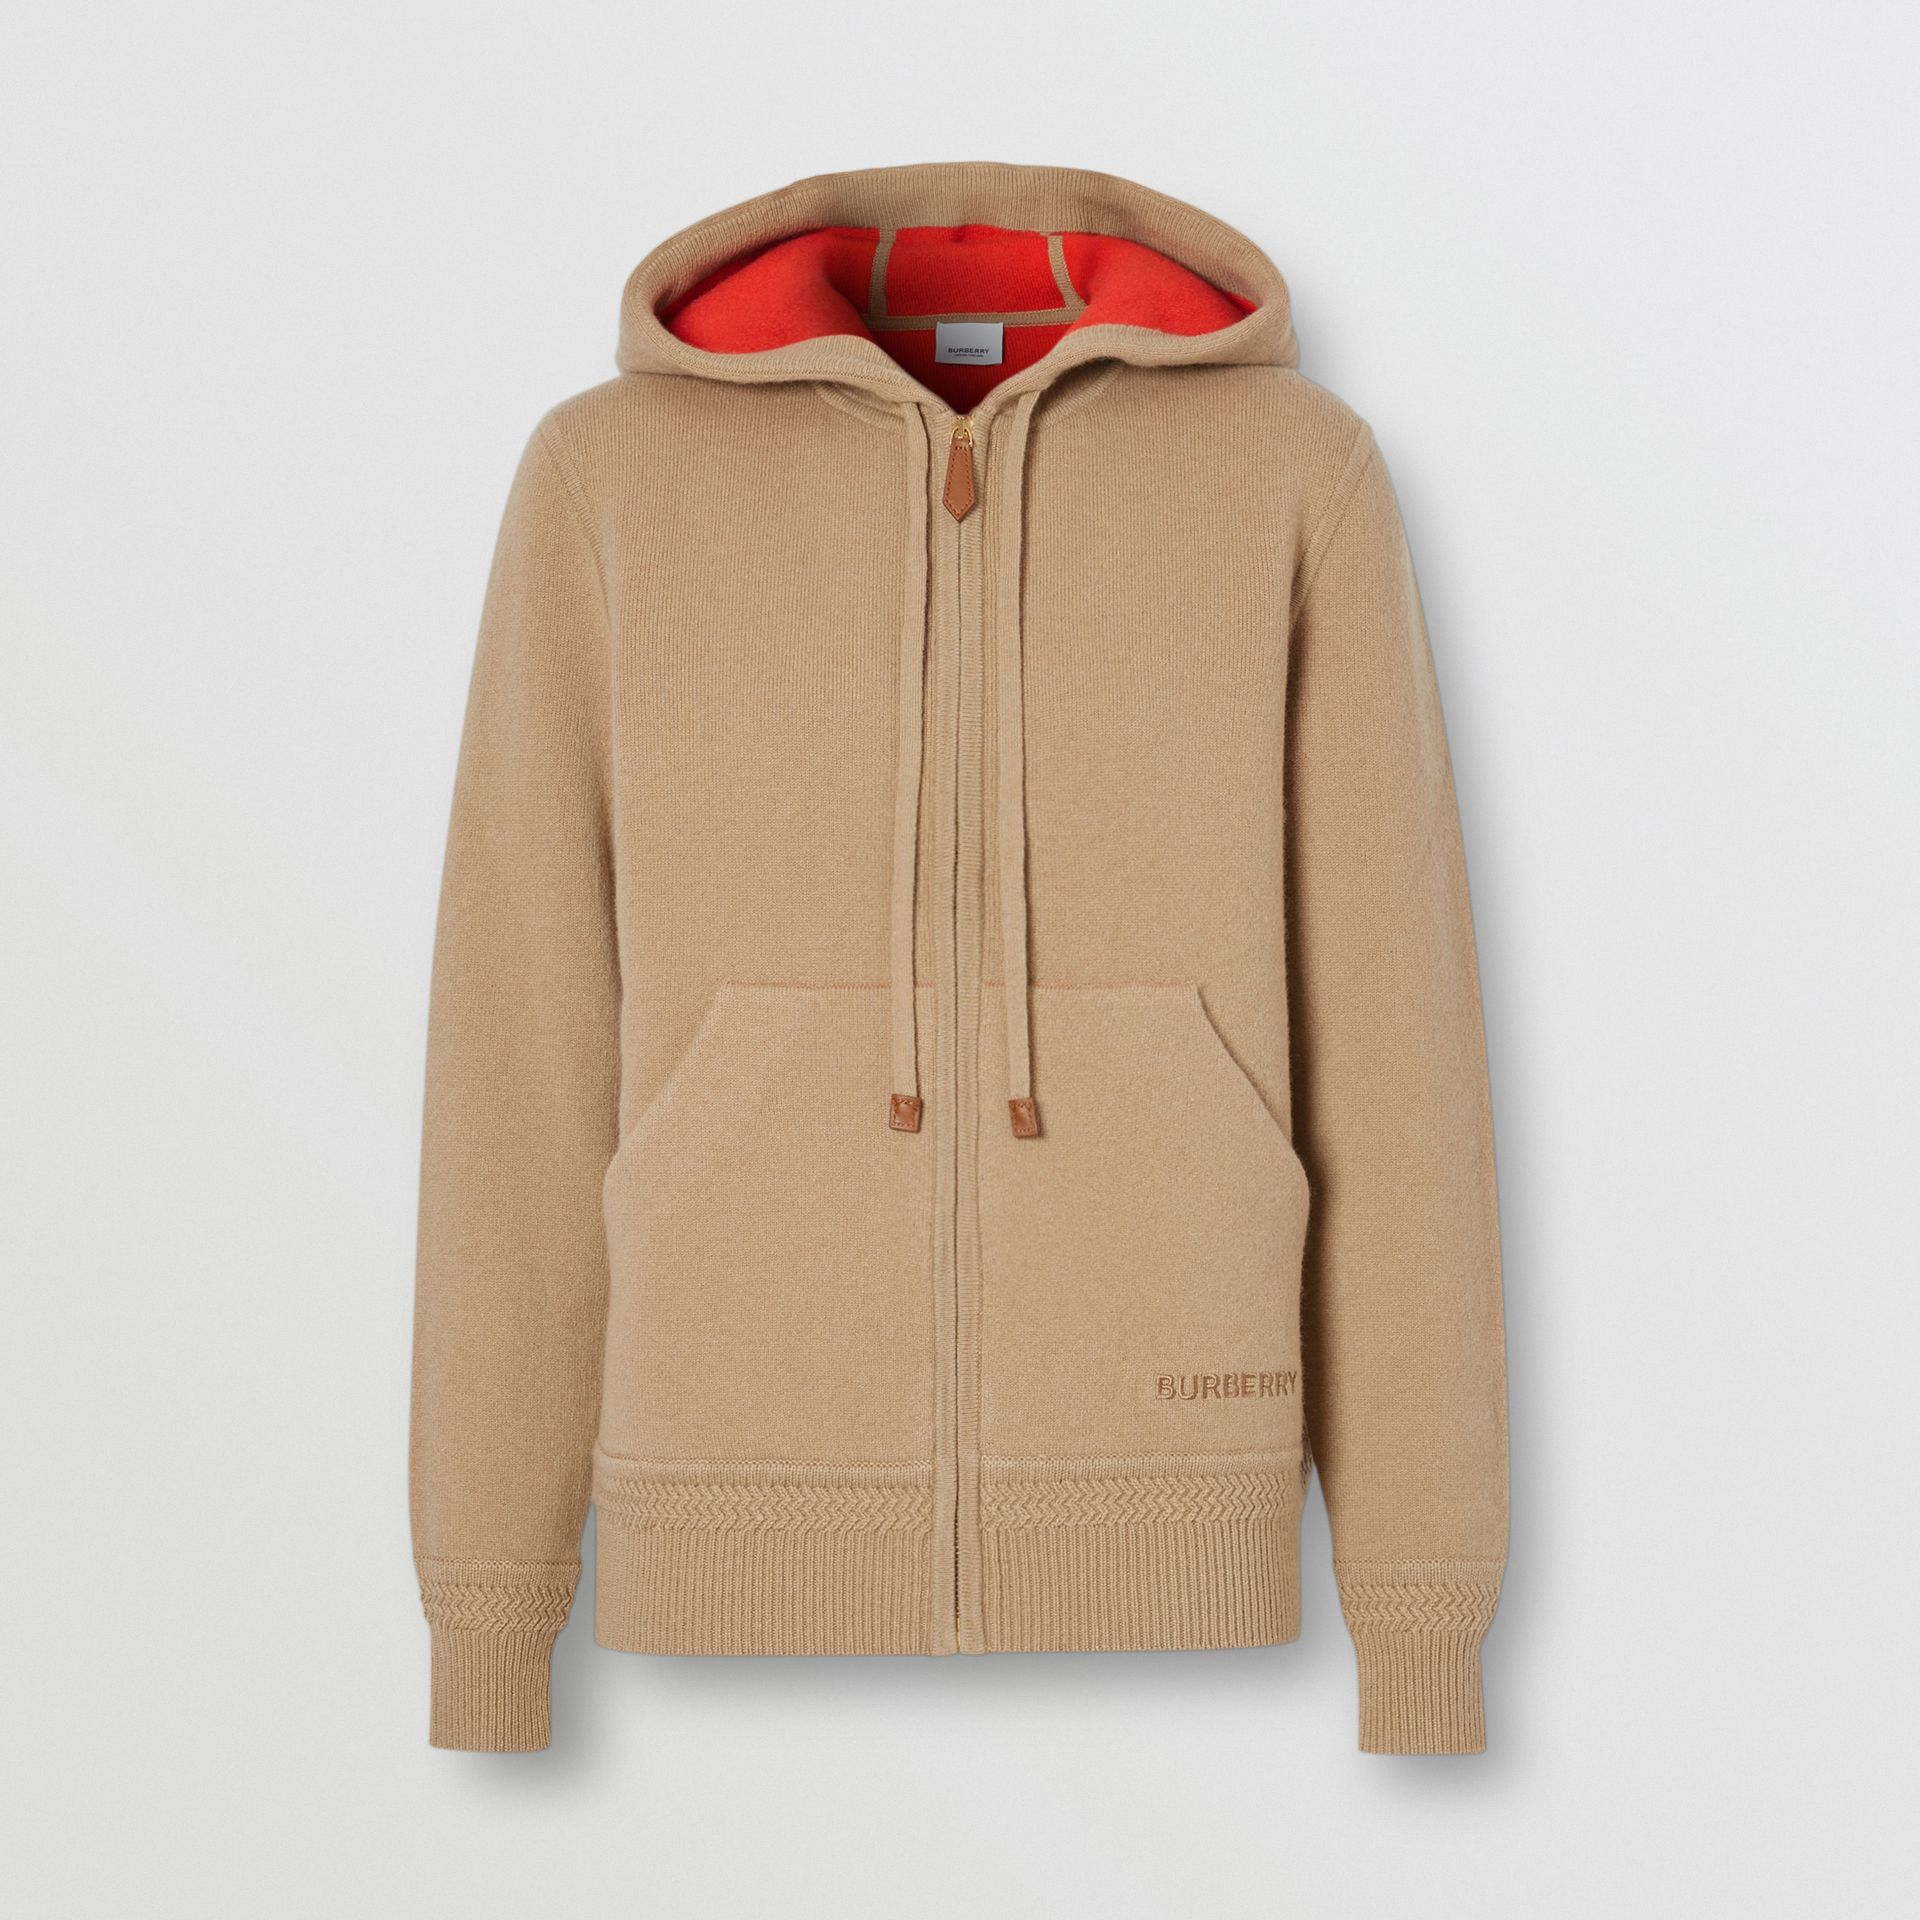 Embroidered Logo Cashmere Hooded Top in Archive Beige - Women | Burberry - gallery image 2